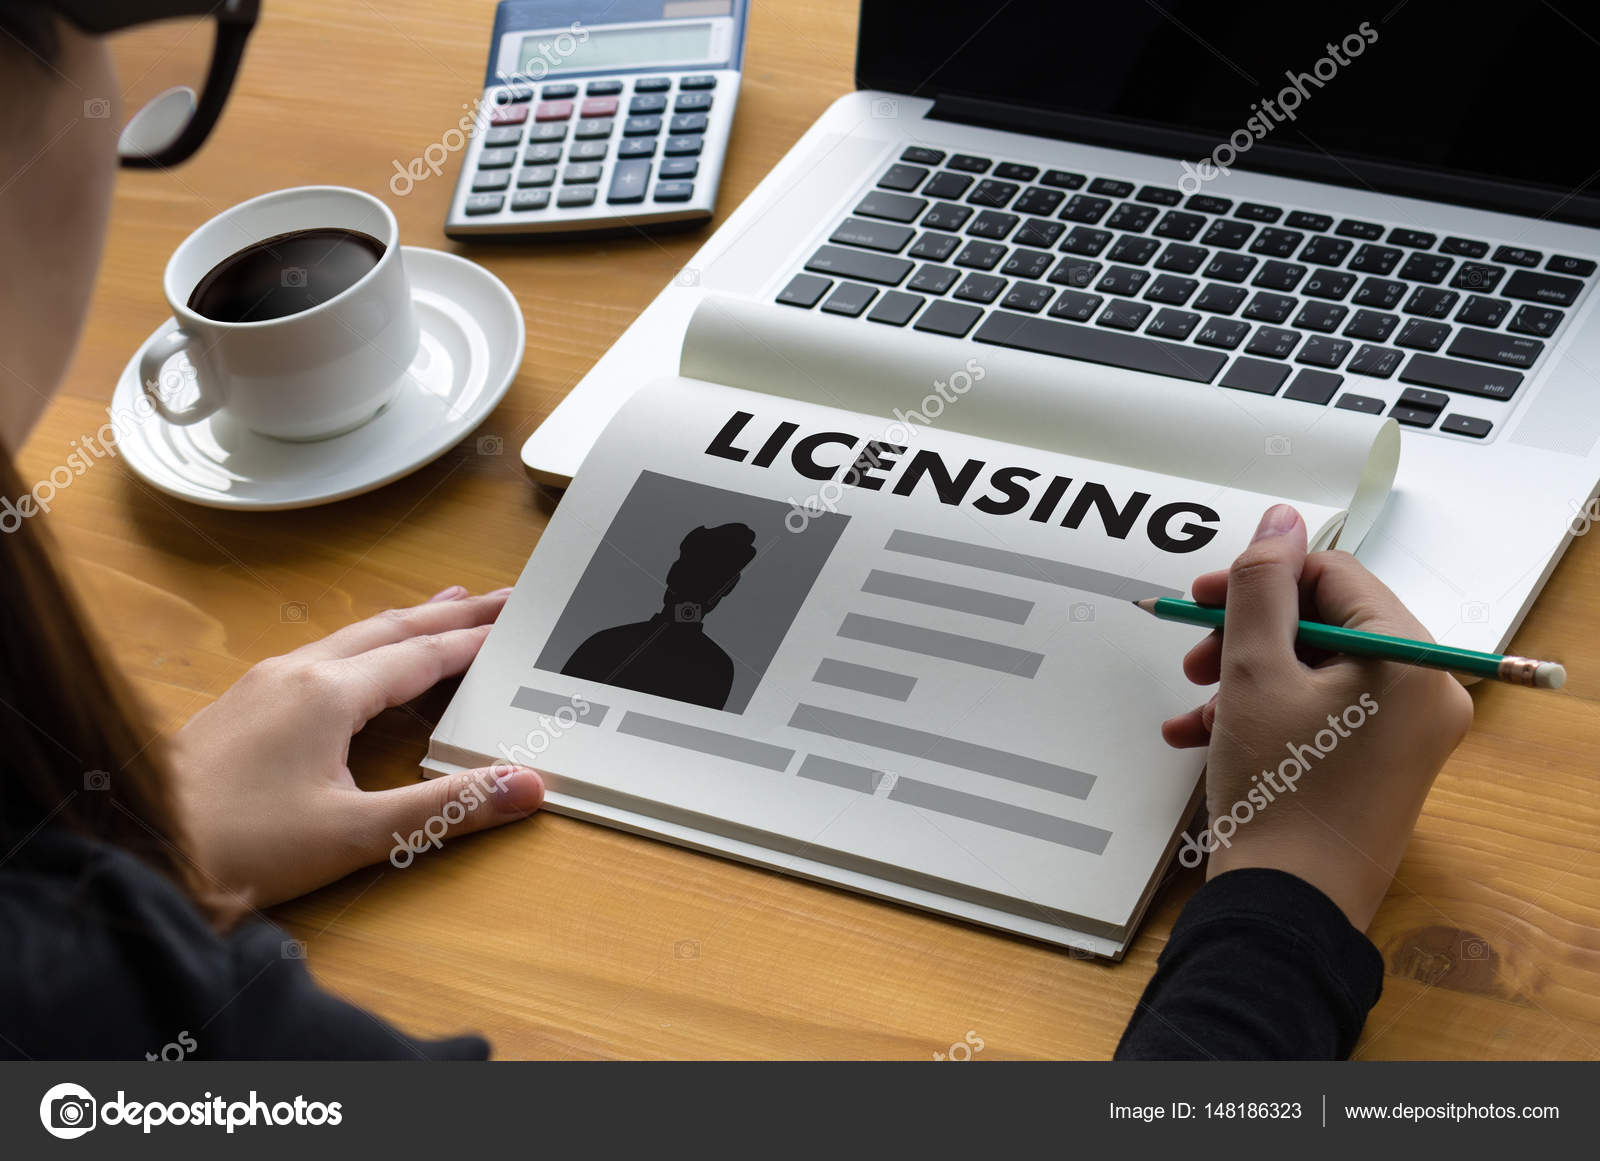 Patent License Agreement Licensing Business Man Hand Working O